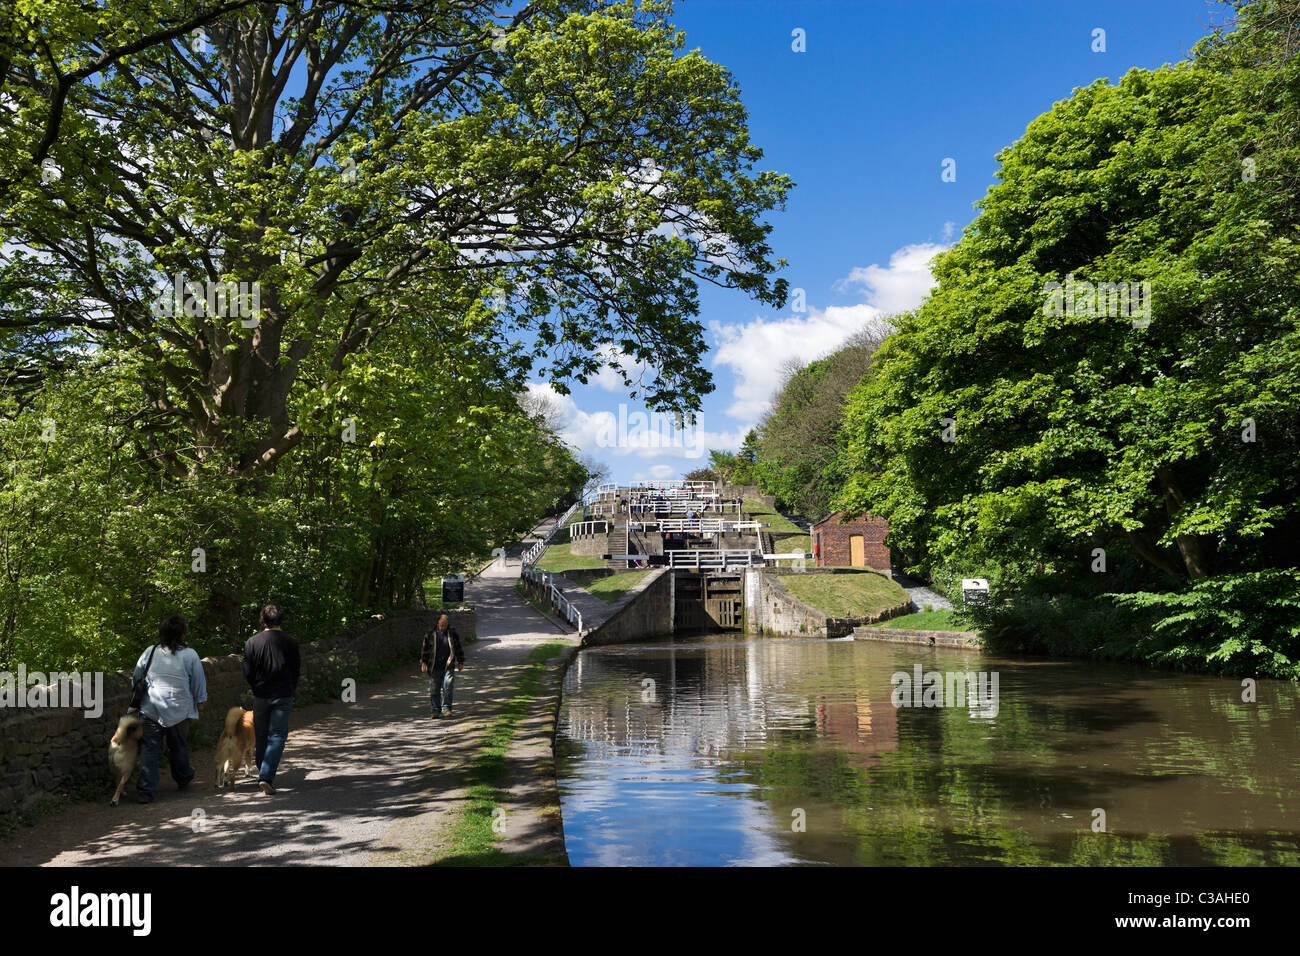 Five Rise Locks on the Leeds and Liverpool Canal, Bingley, West Yorkshire, UK - Stock Image